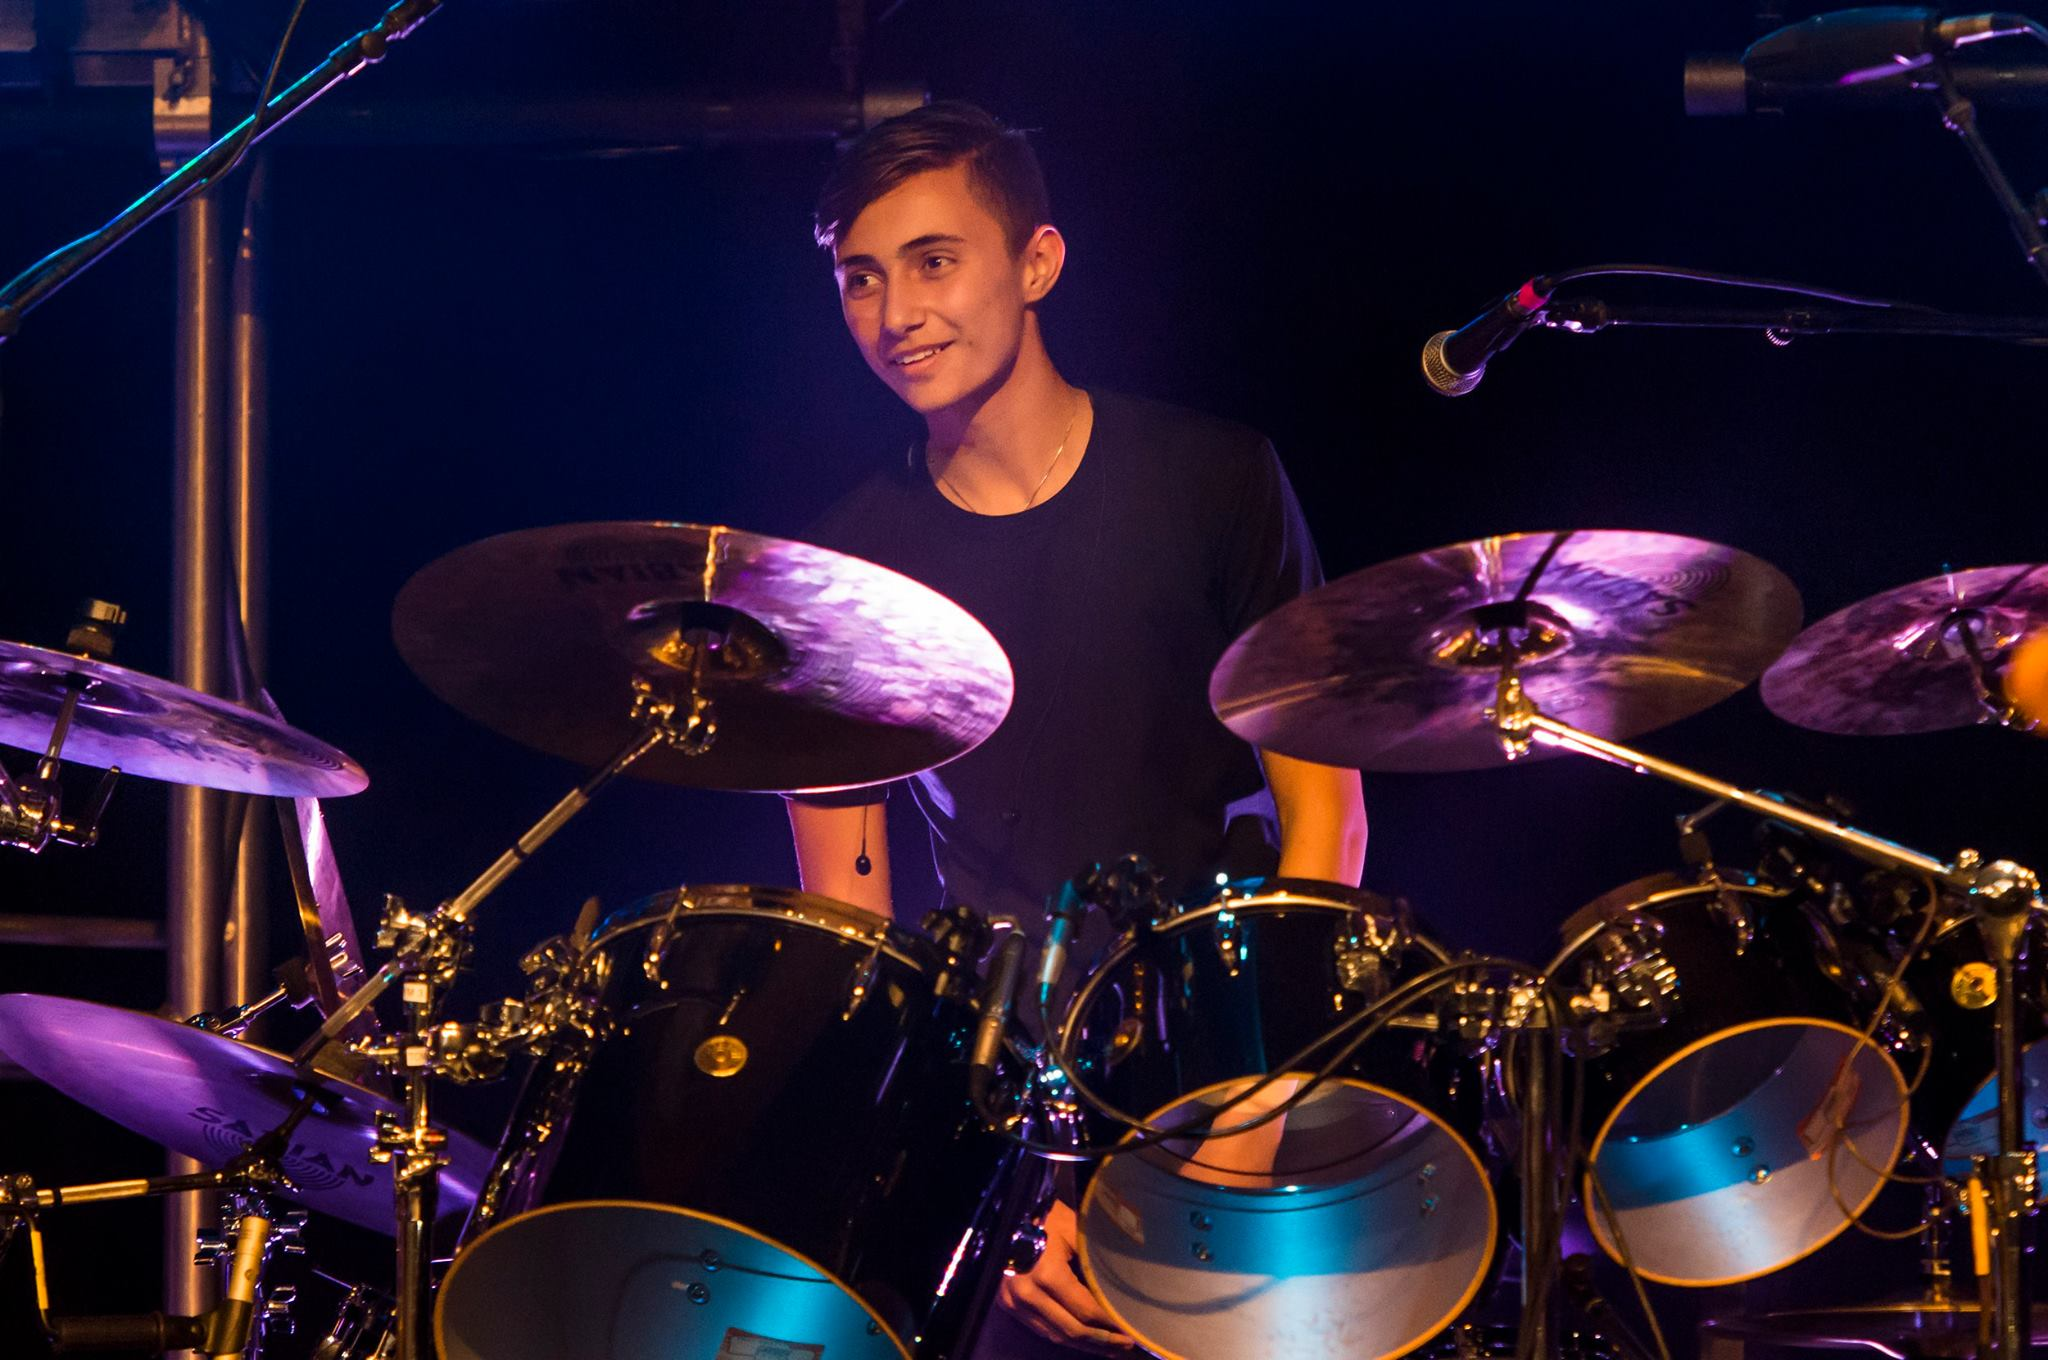 Phil Collins' son, Nicholas, on the drums. Photo: Magical Photos/Mitchell Zachs